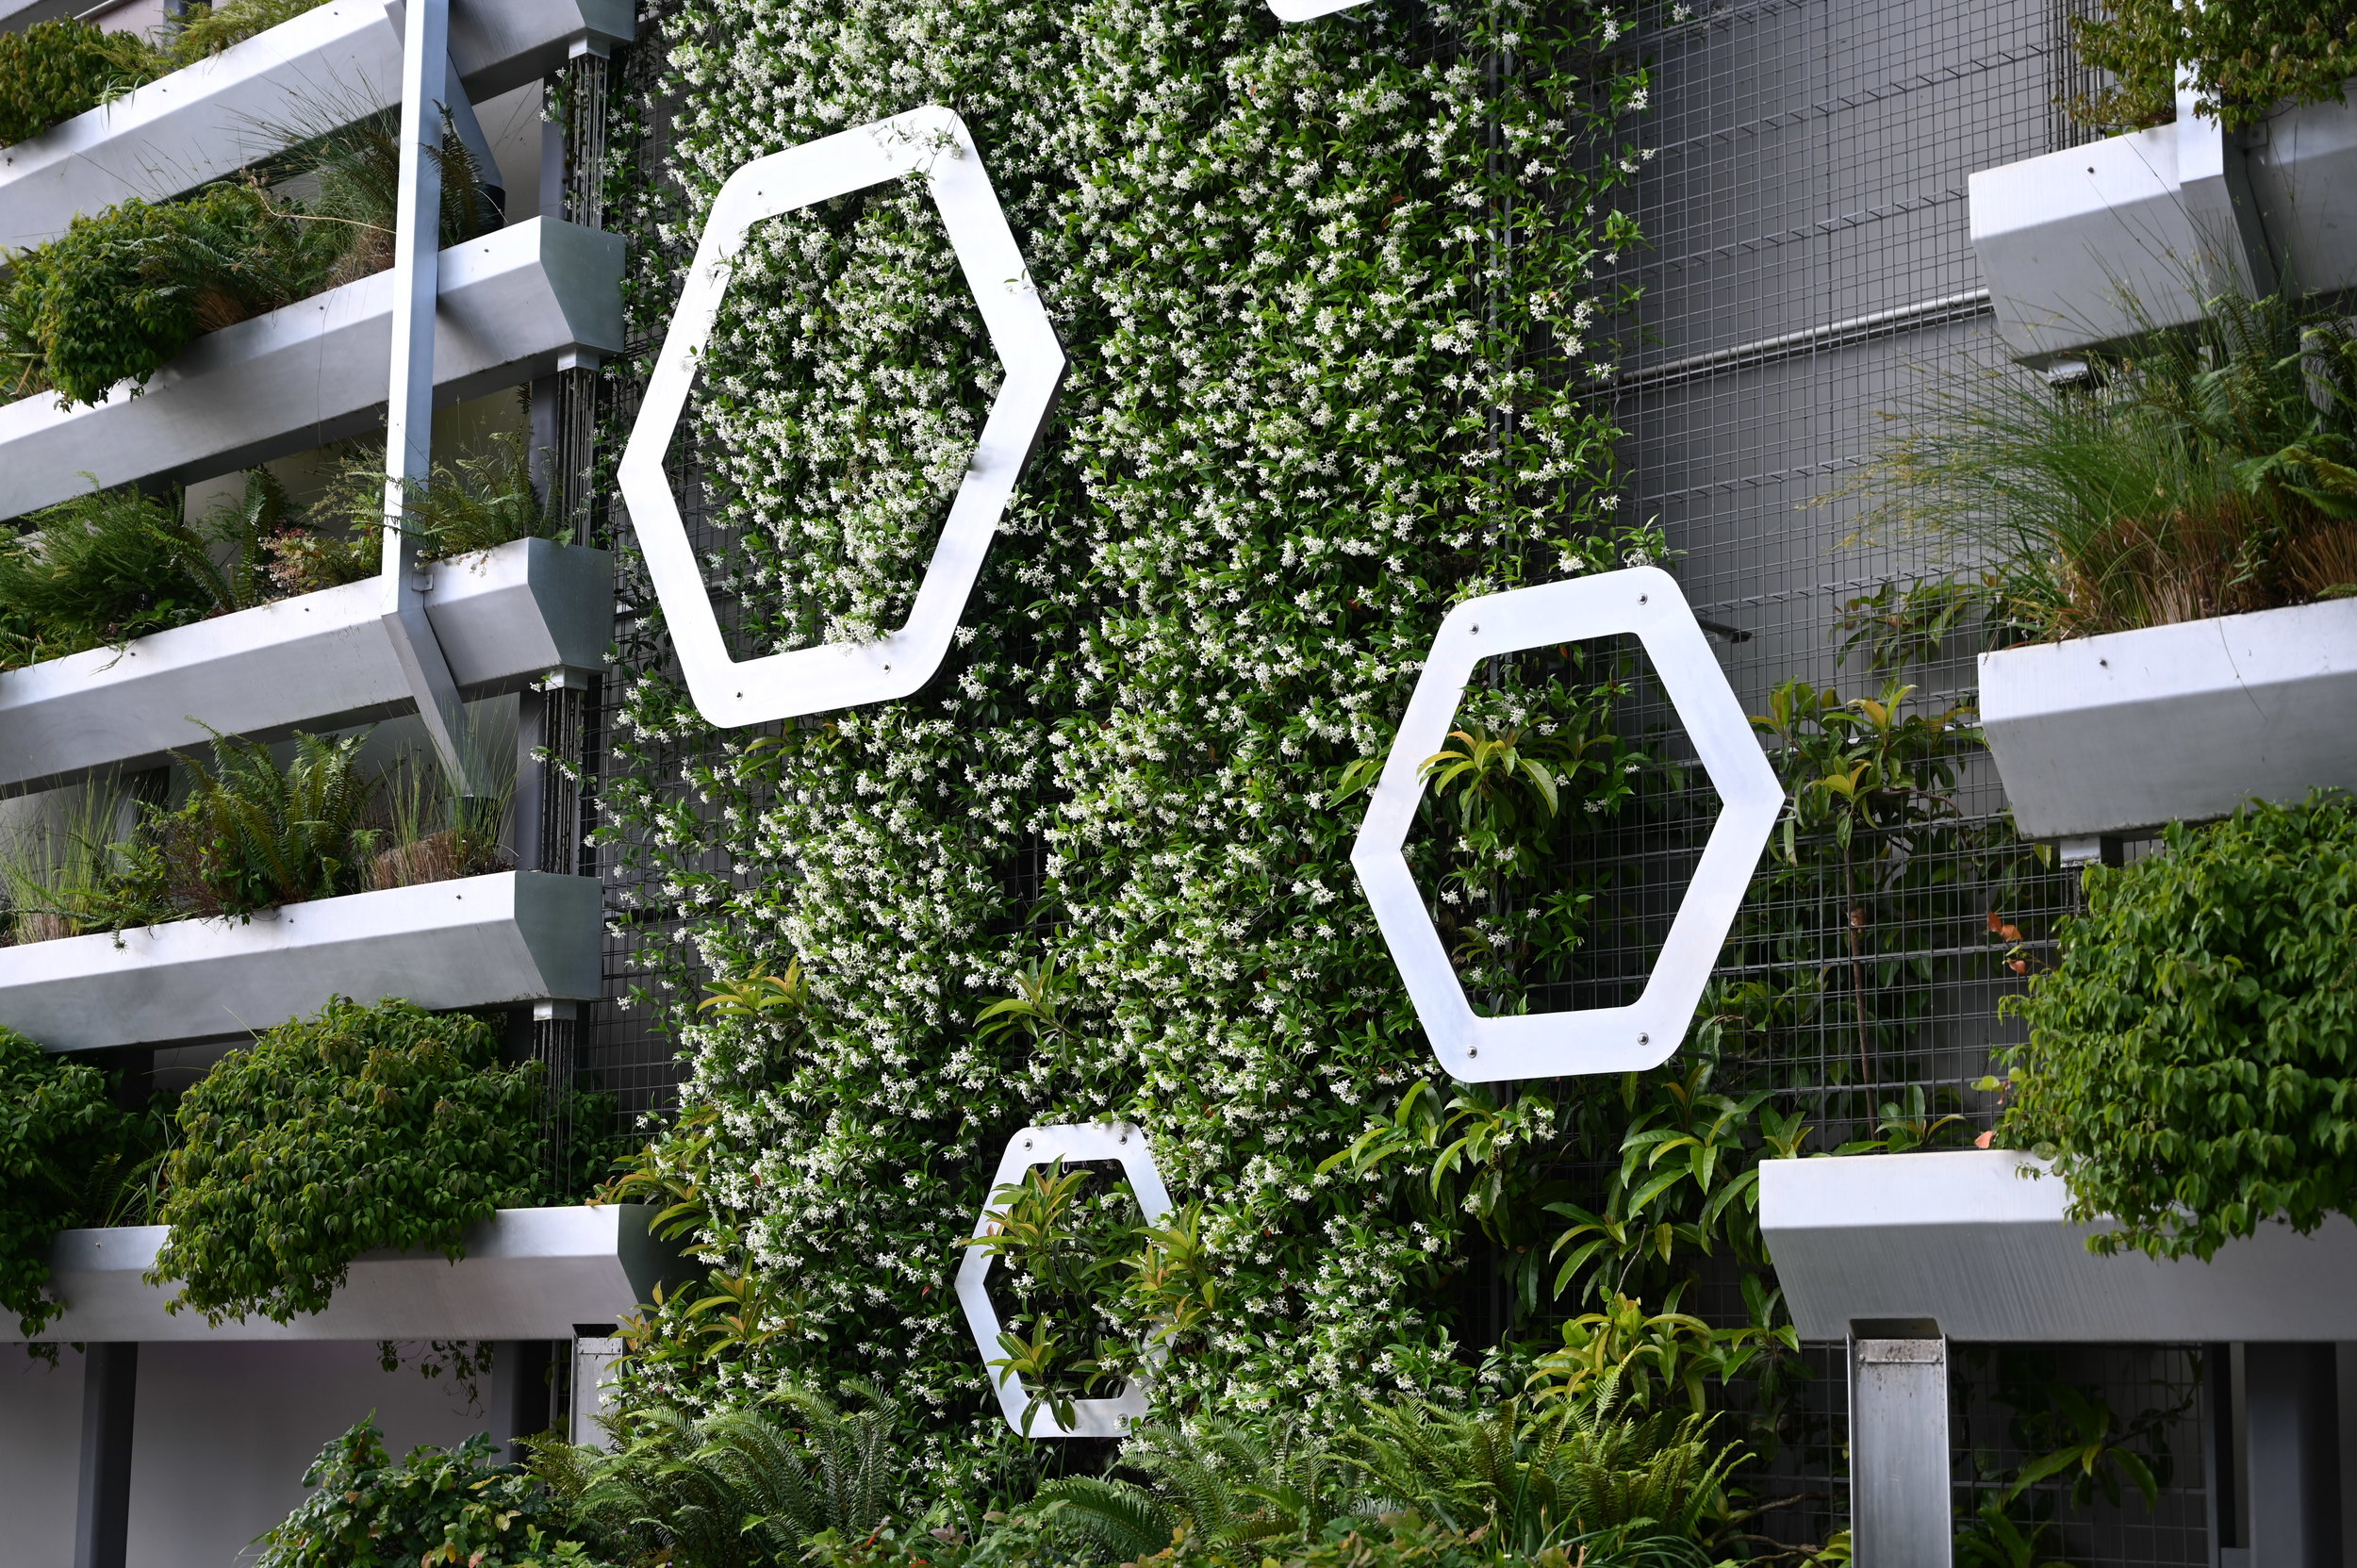 Metal hexagons on stormwater wall surrounded by blooming star jasmine